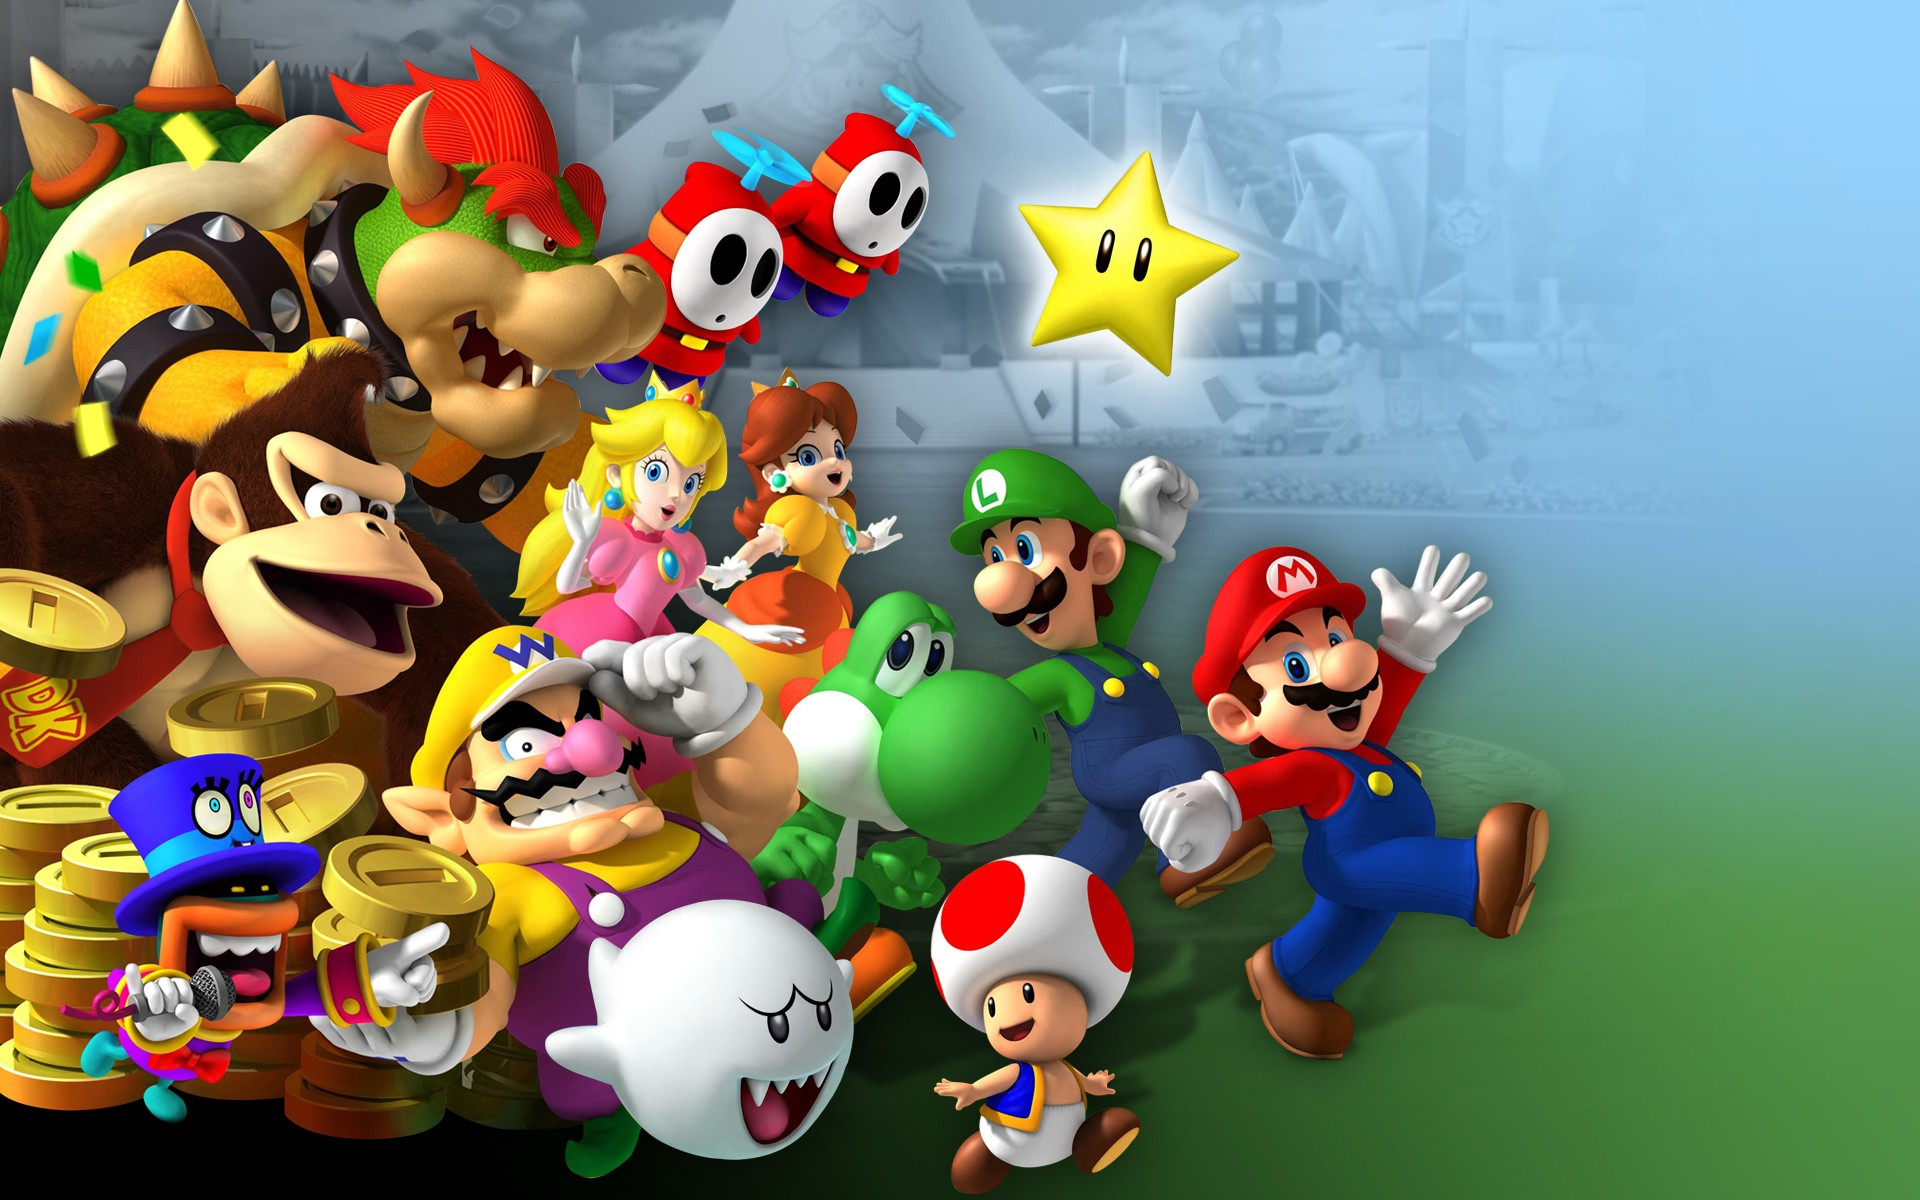 Video Game clipart vedio Tablet wallpapers Video Phone Game